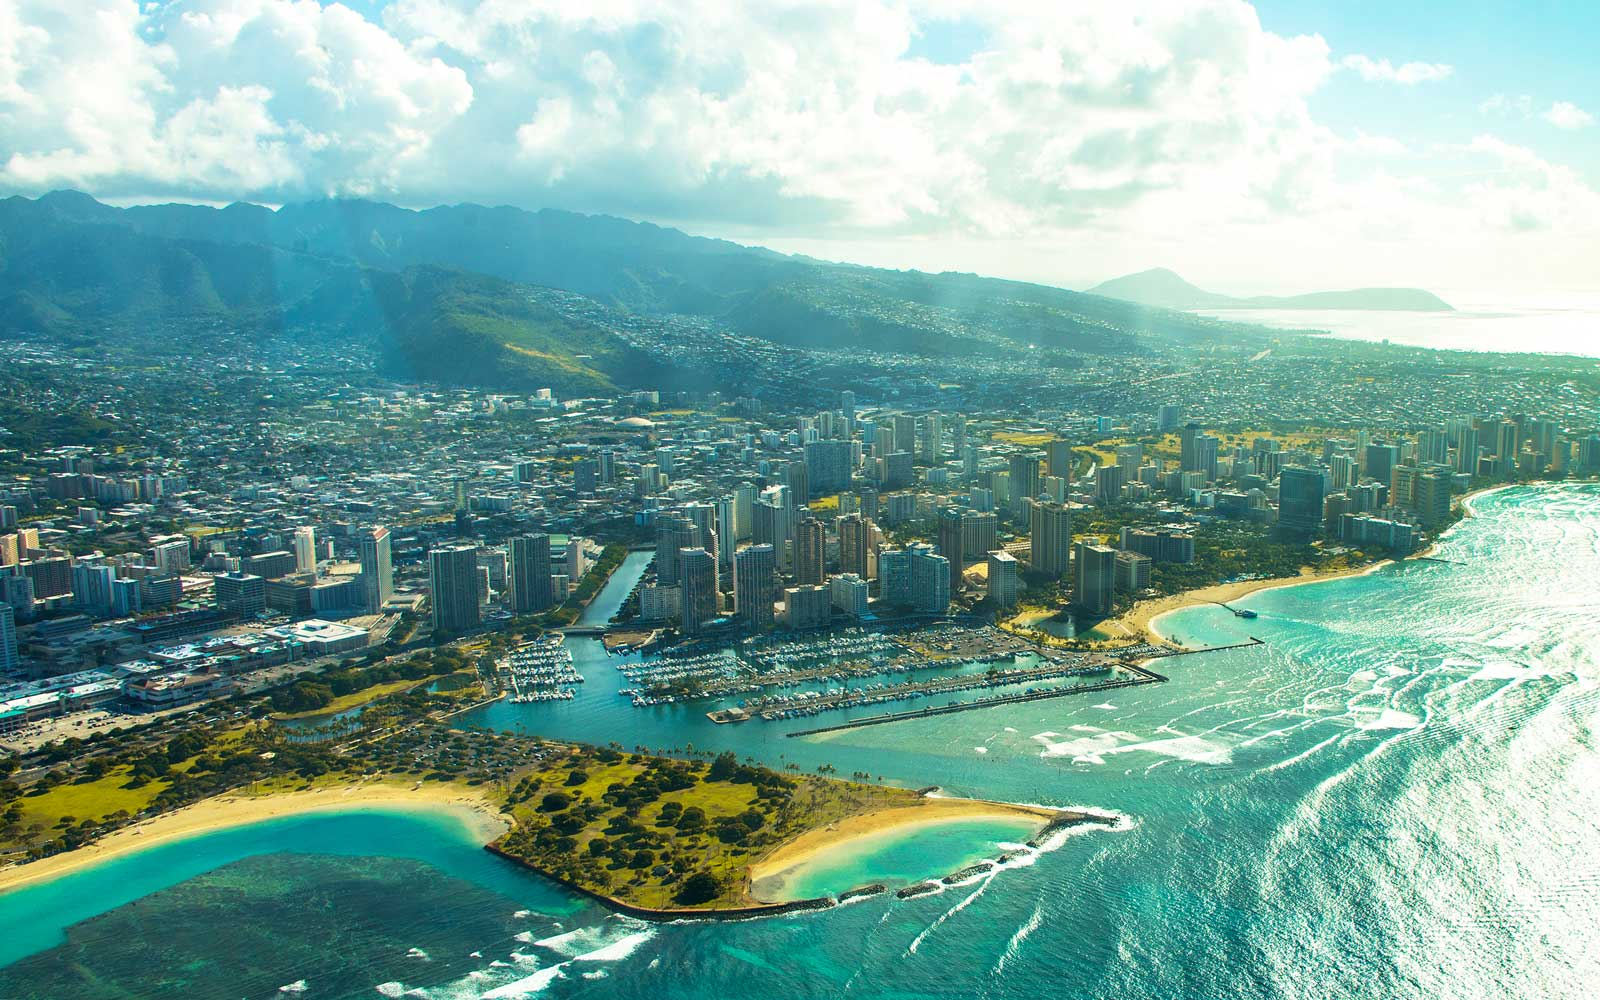 Southwest Is Officially Testing Flights to Hawaii, Meaning Those Cheap Tickets Are Almost Here